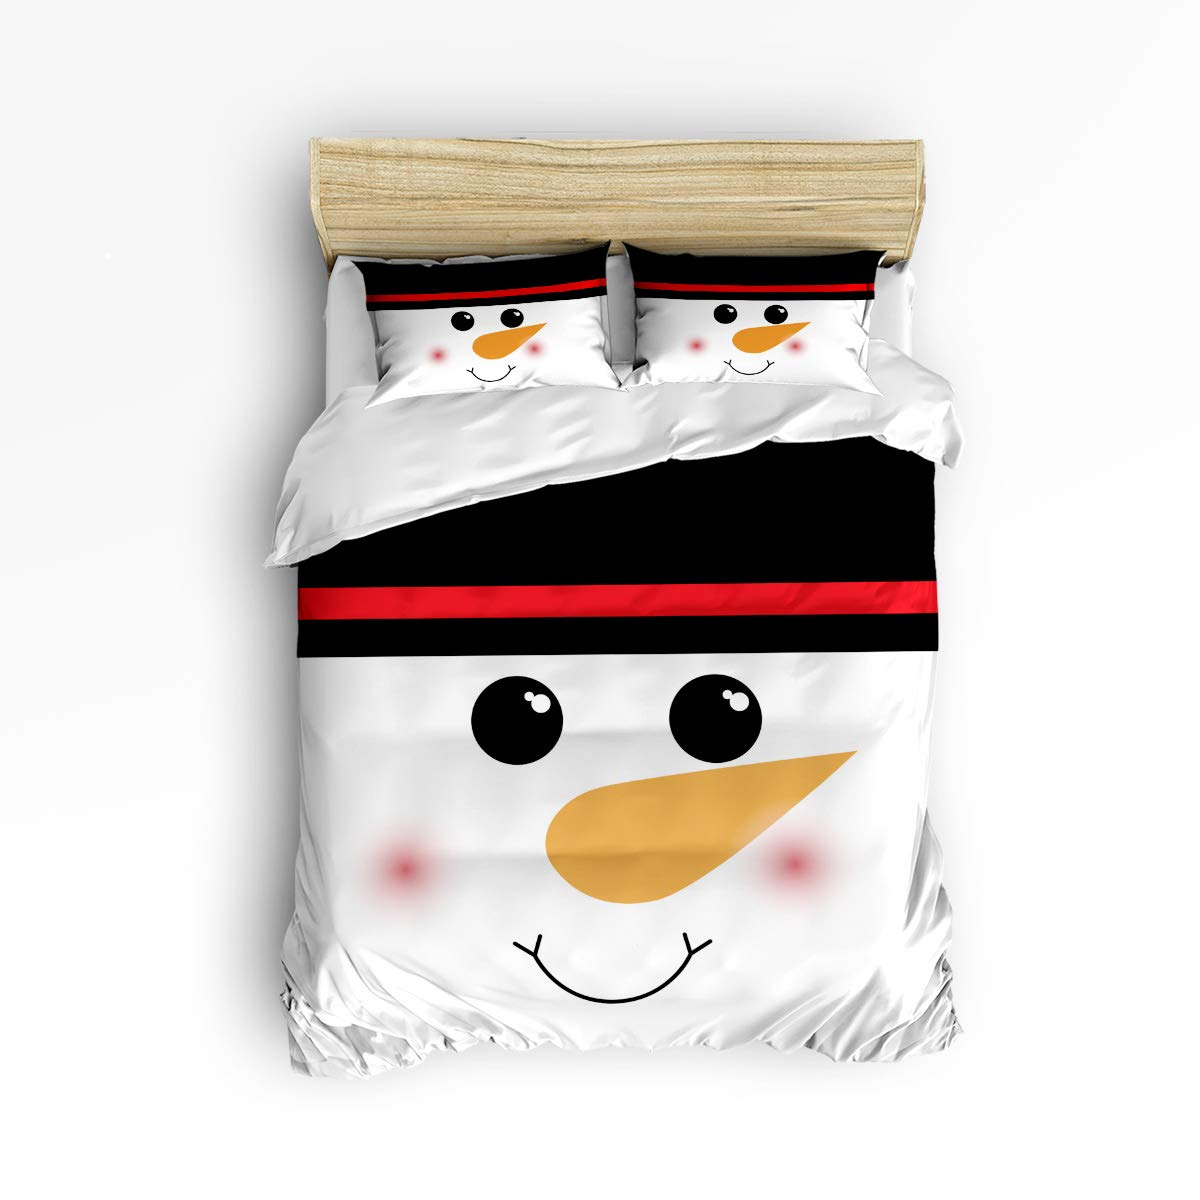 3 Piece Bedding Set - 1 Soft Down Comforter Quilt Bedding Cover Matching 2 Pillow Shams with Zipper Closure, Christmas Shy Snowman Smile Life Black and White Bedding Duvet Cover Set Full Size